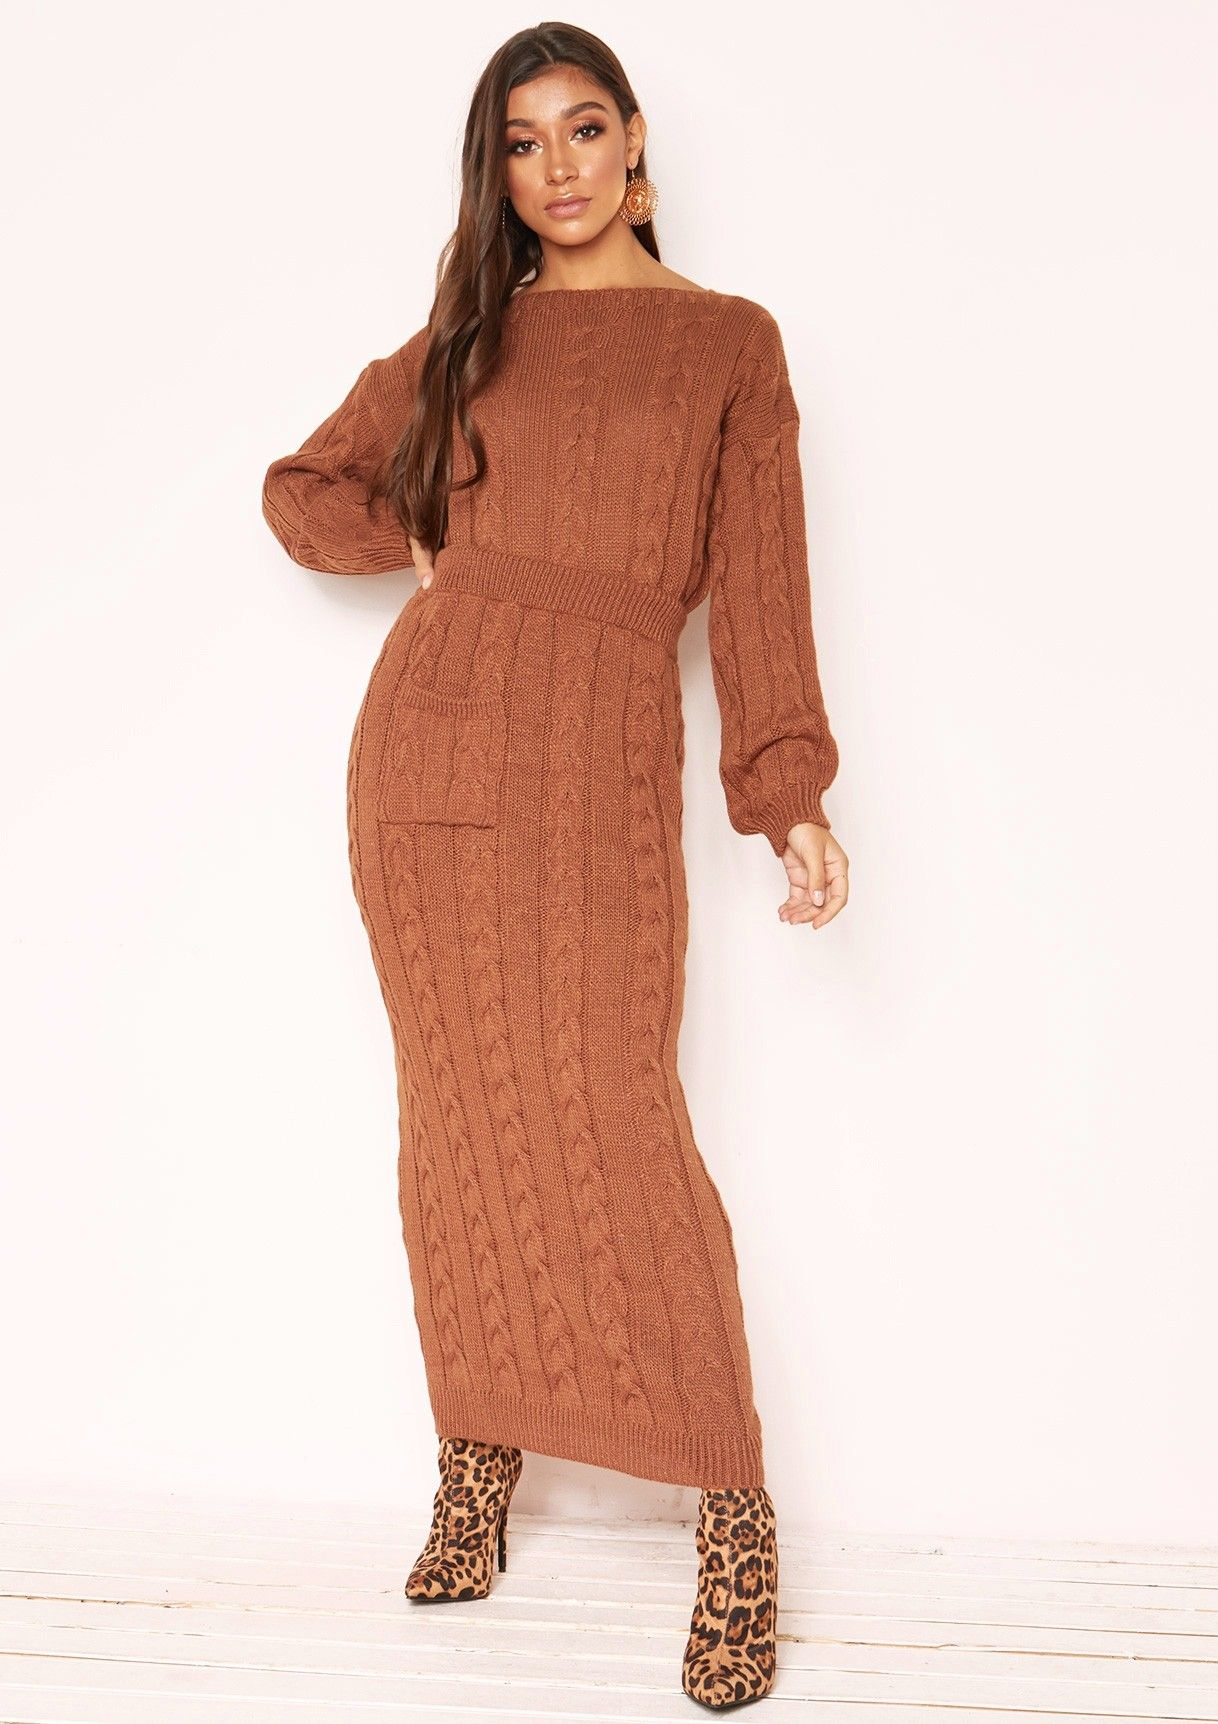 307c93e93e Noara Rust Knit Midi Co-ord Set in 2019 | ⚡ in with the new ...